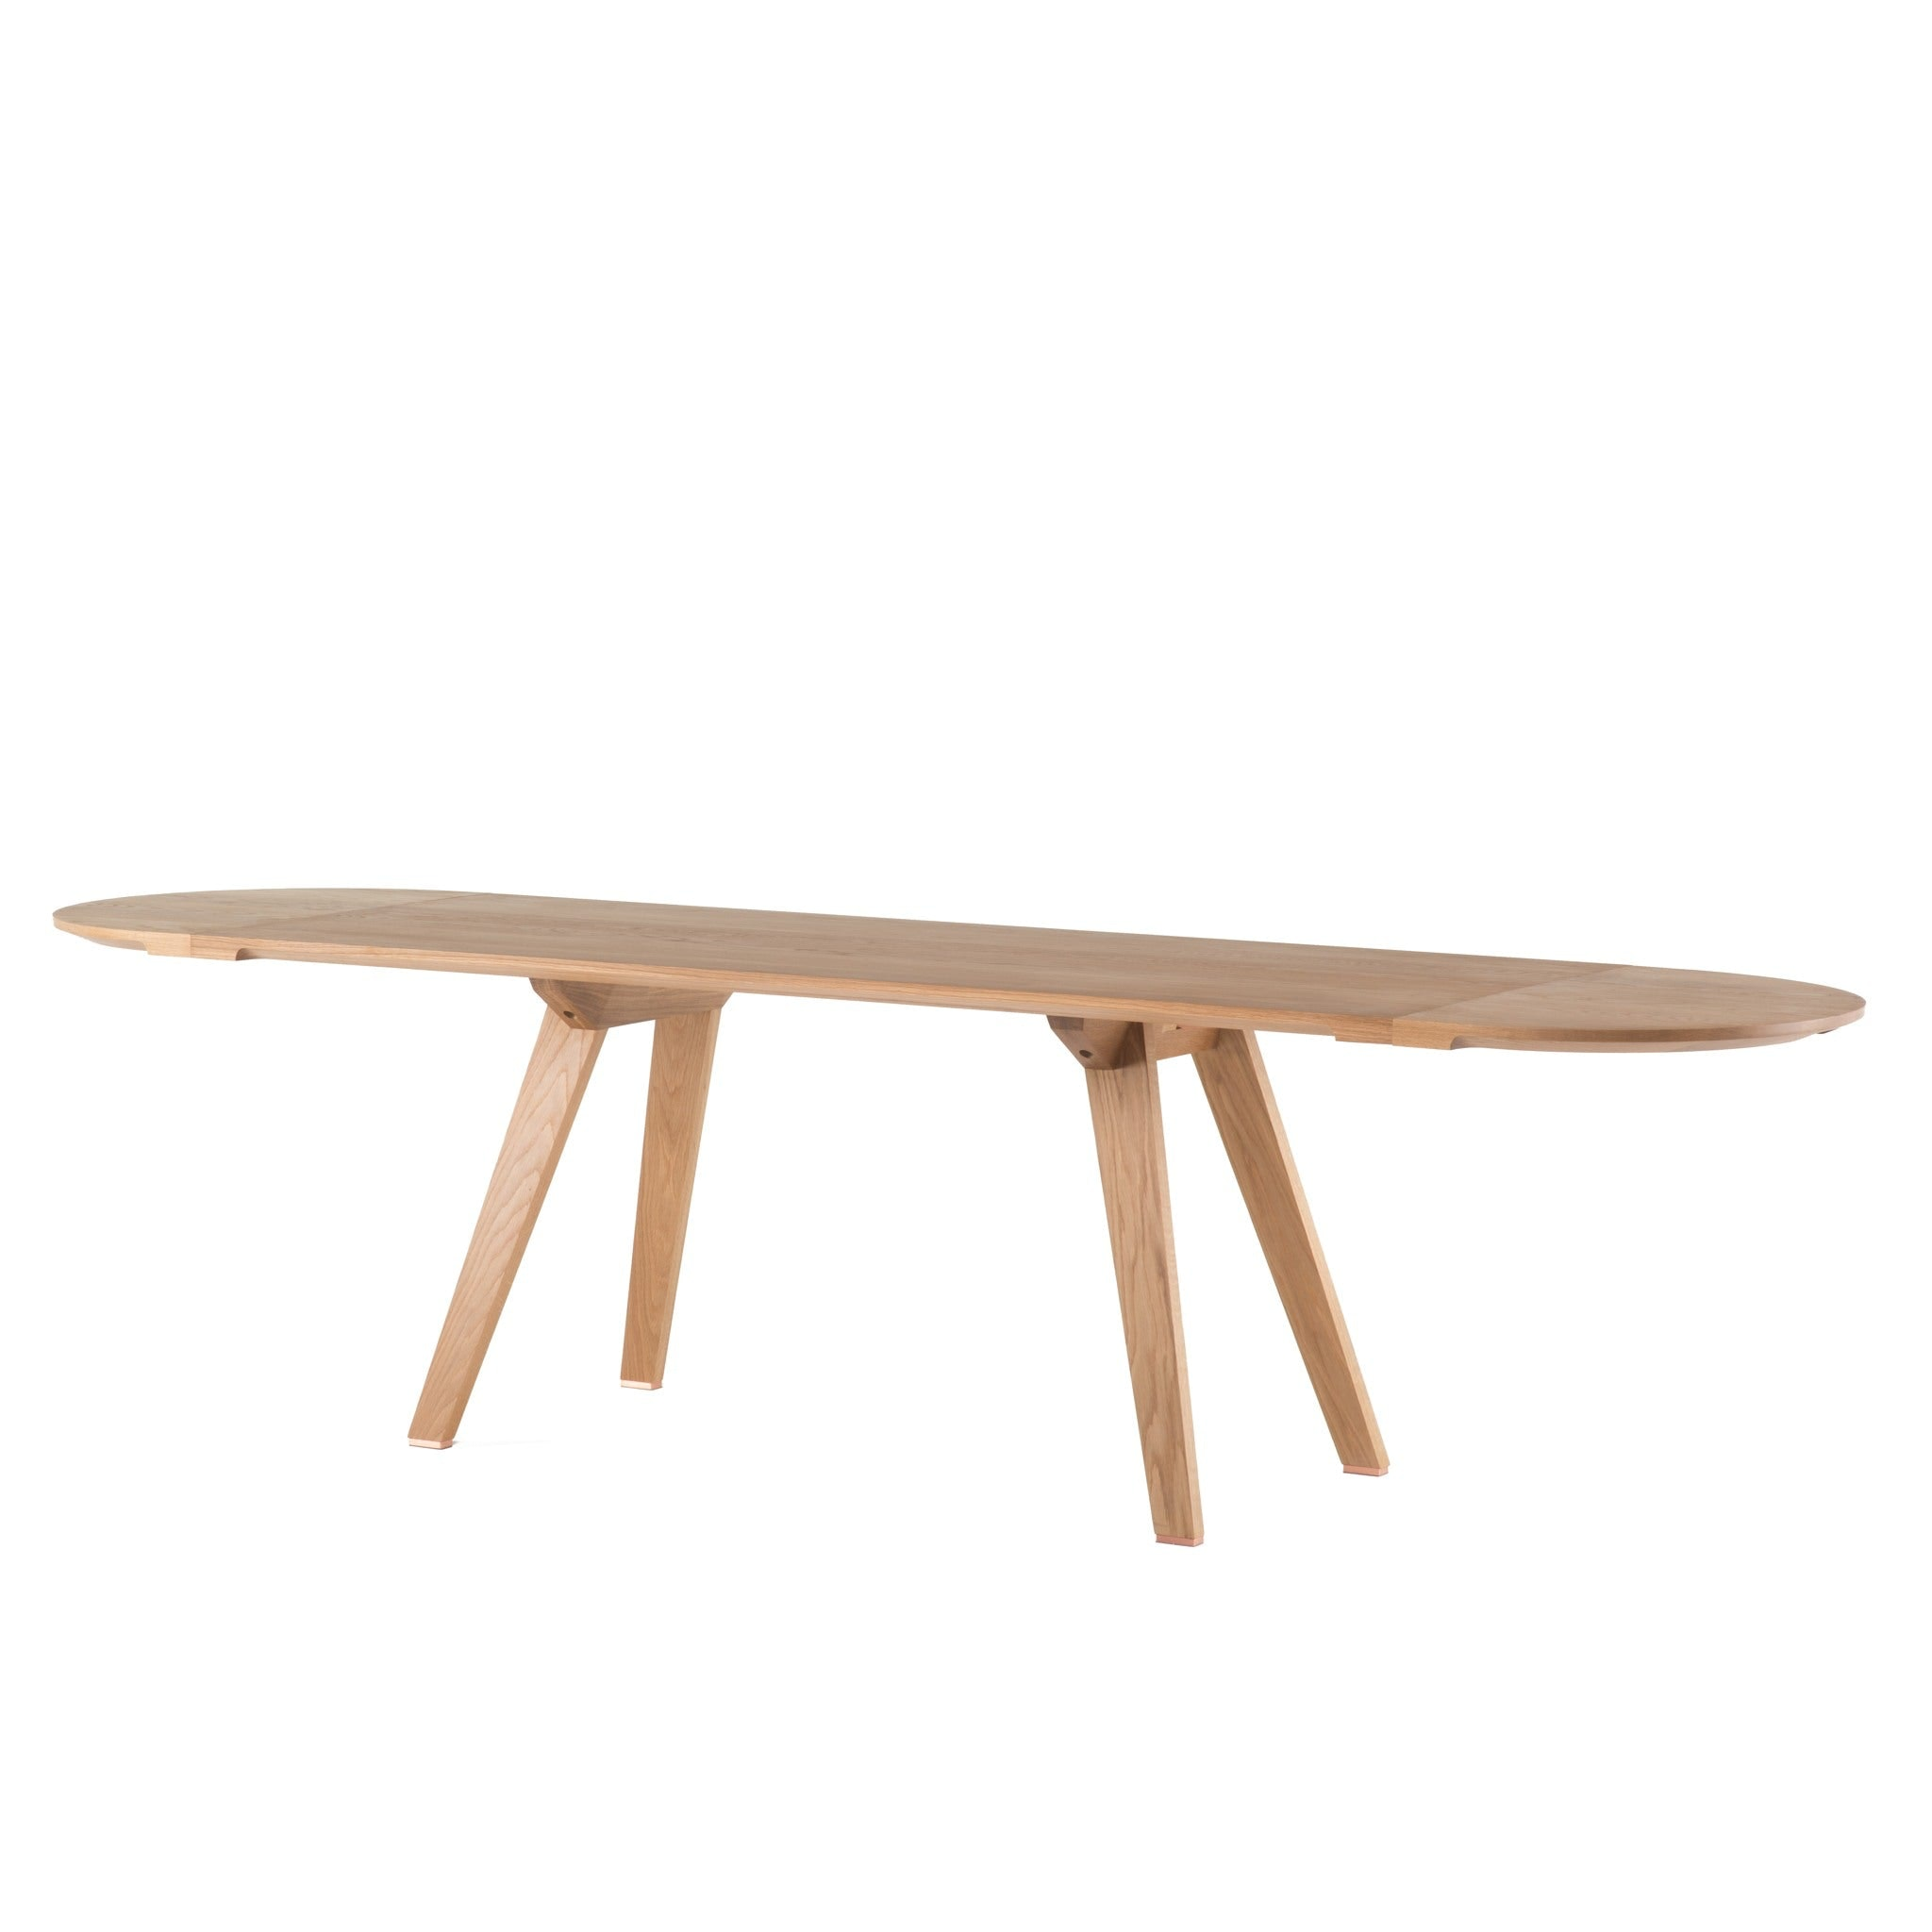 Together Extending Table by Ilse Crawford